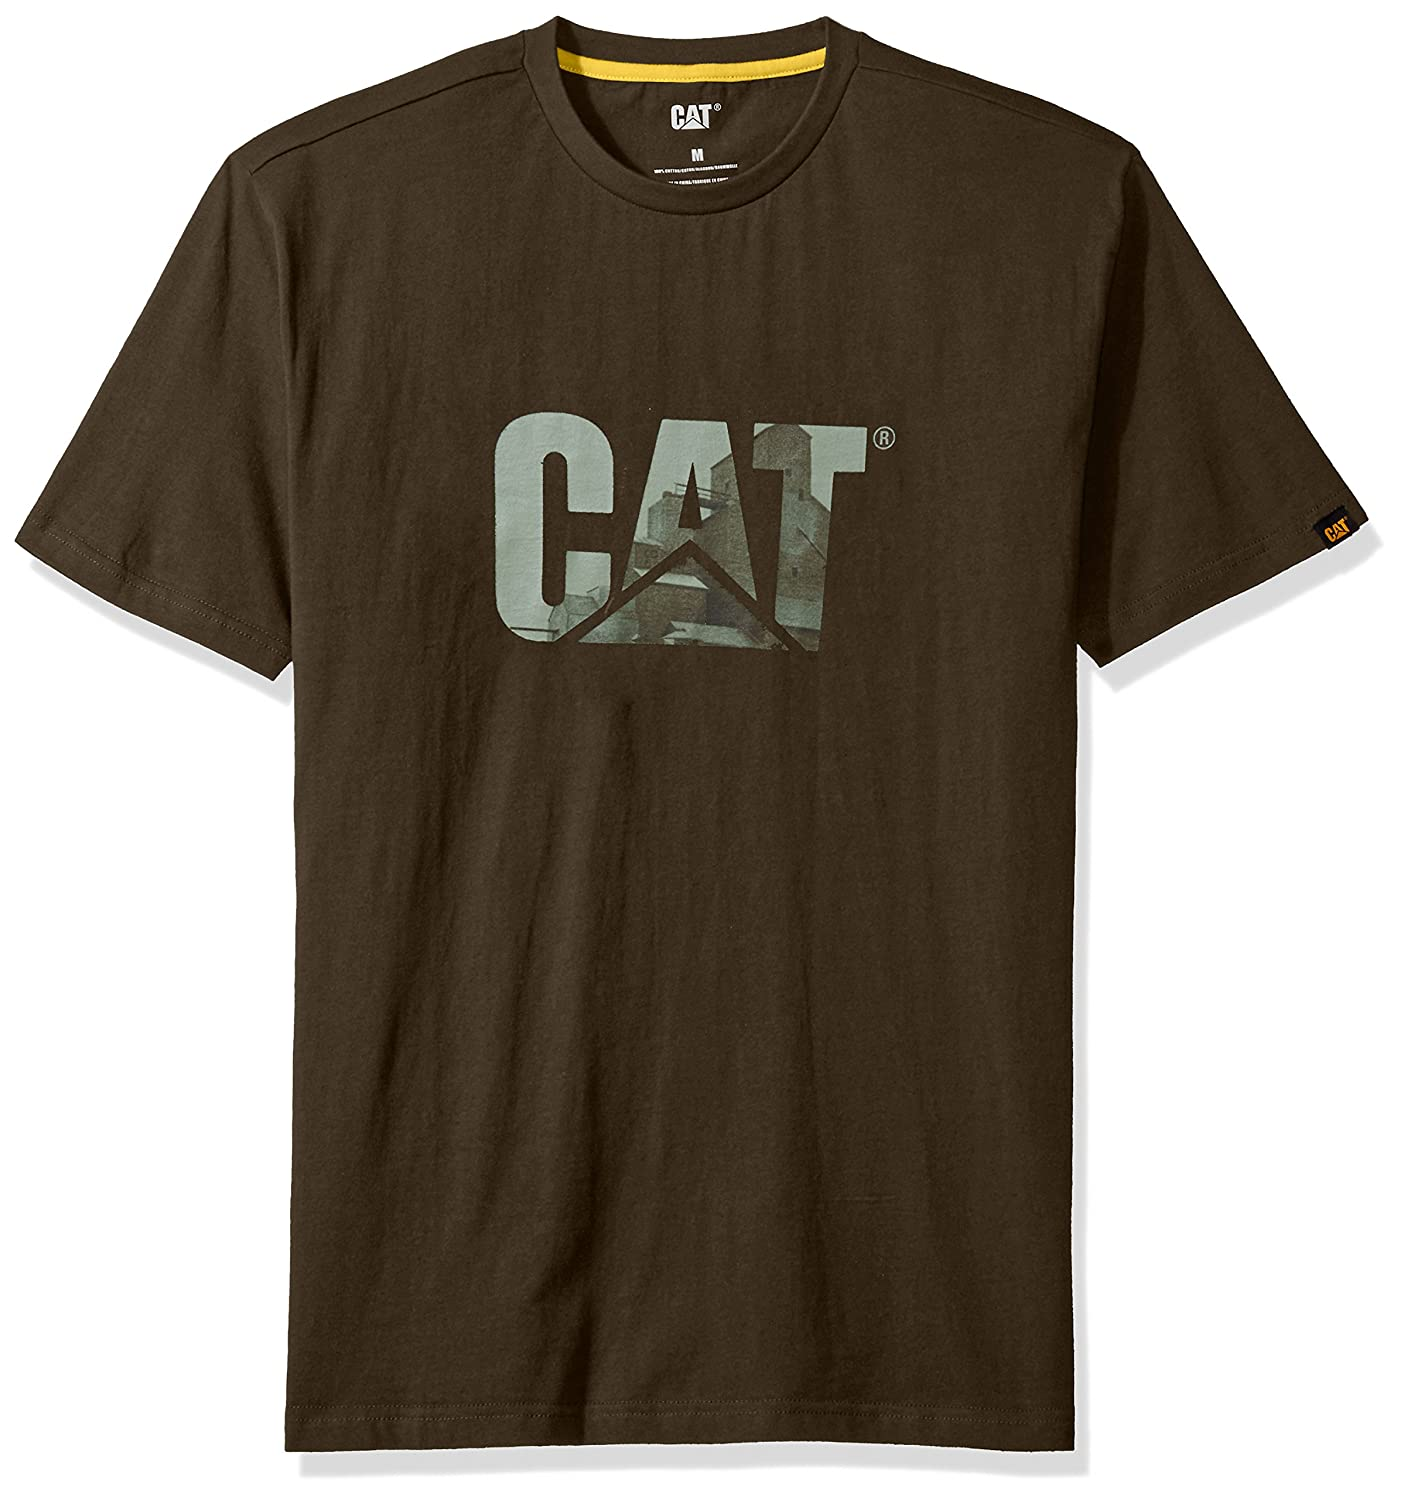 Caterpillar SHIRT メンズ B01N2VL5QK L|Grain Silo Grain Silo L